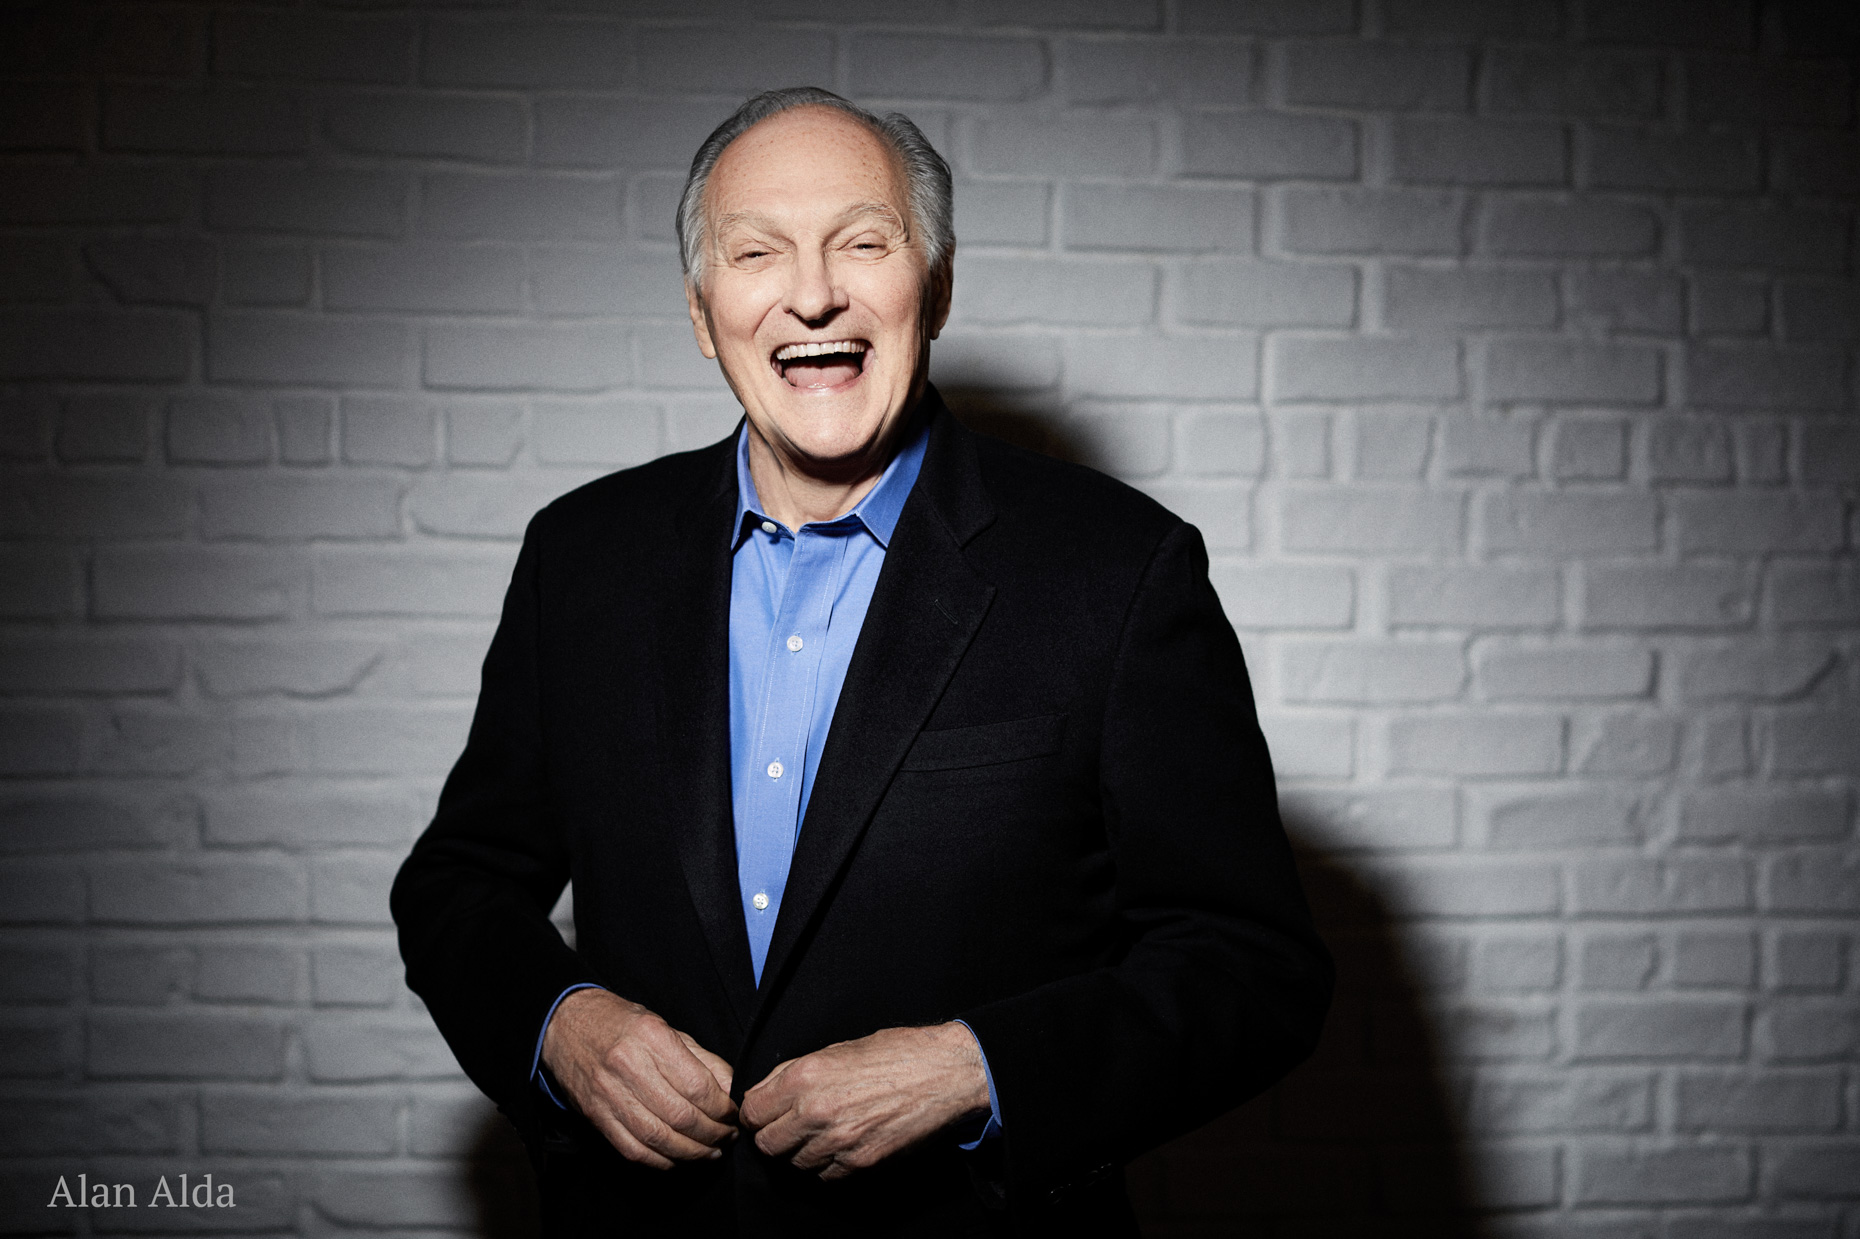 Alan Alda and Kathy Connell Portrait Session